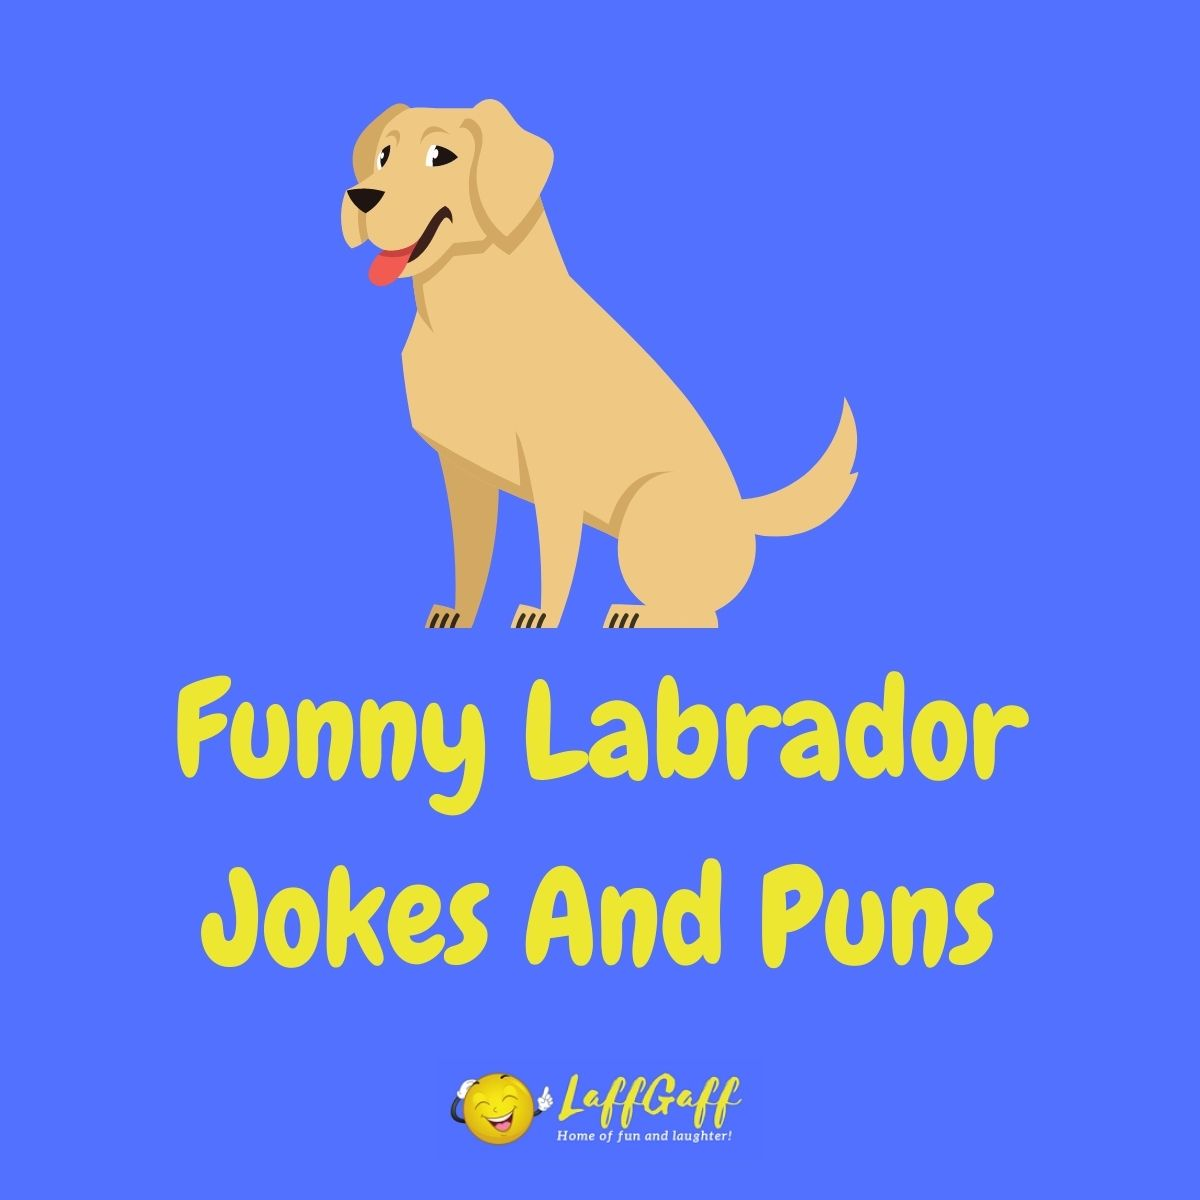 Featured image for a page of funny Labrador jokes and puns.